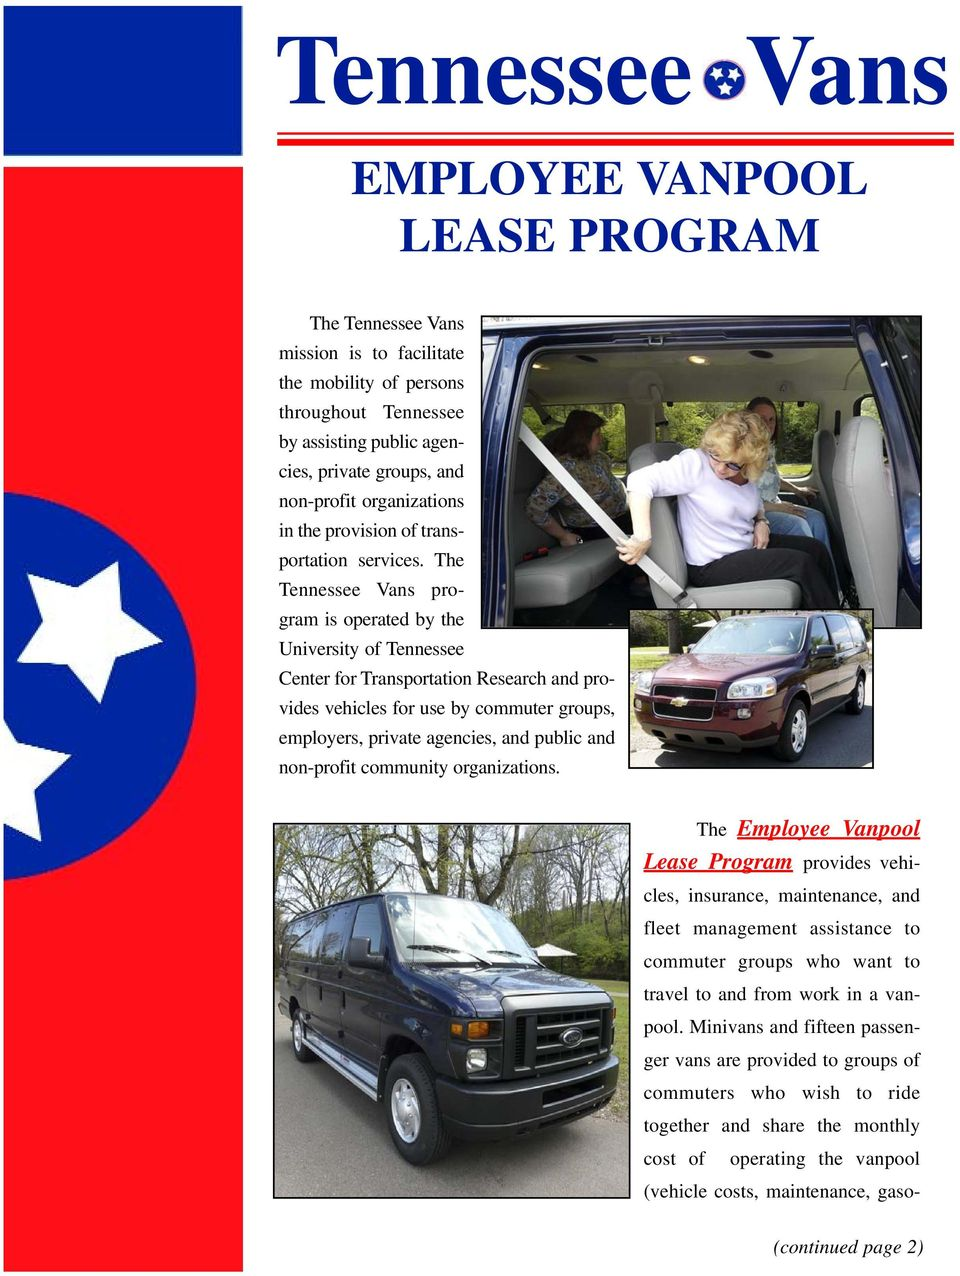 The Tennessee Vans program is operated by the University of Tennessee Center for Transportation Research and provides vehicles for use by commuter groups, employers, private agencies, and public and